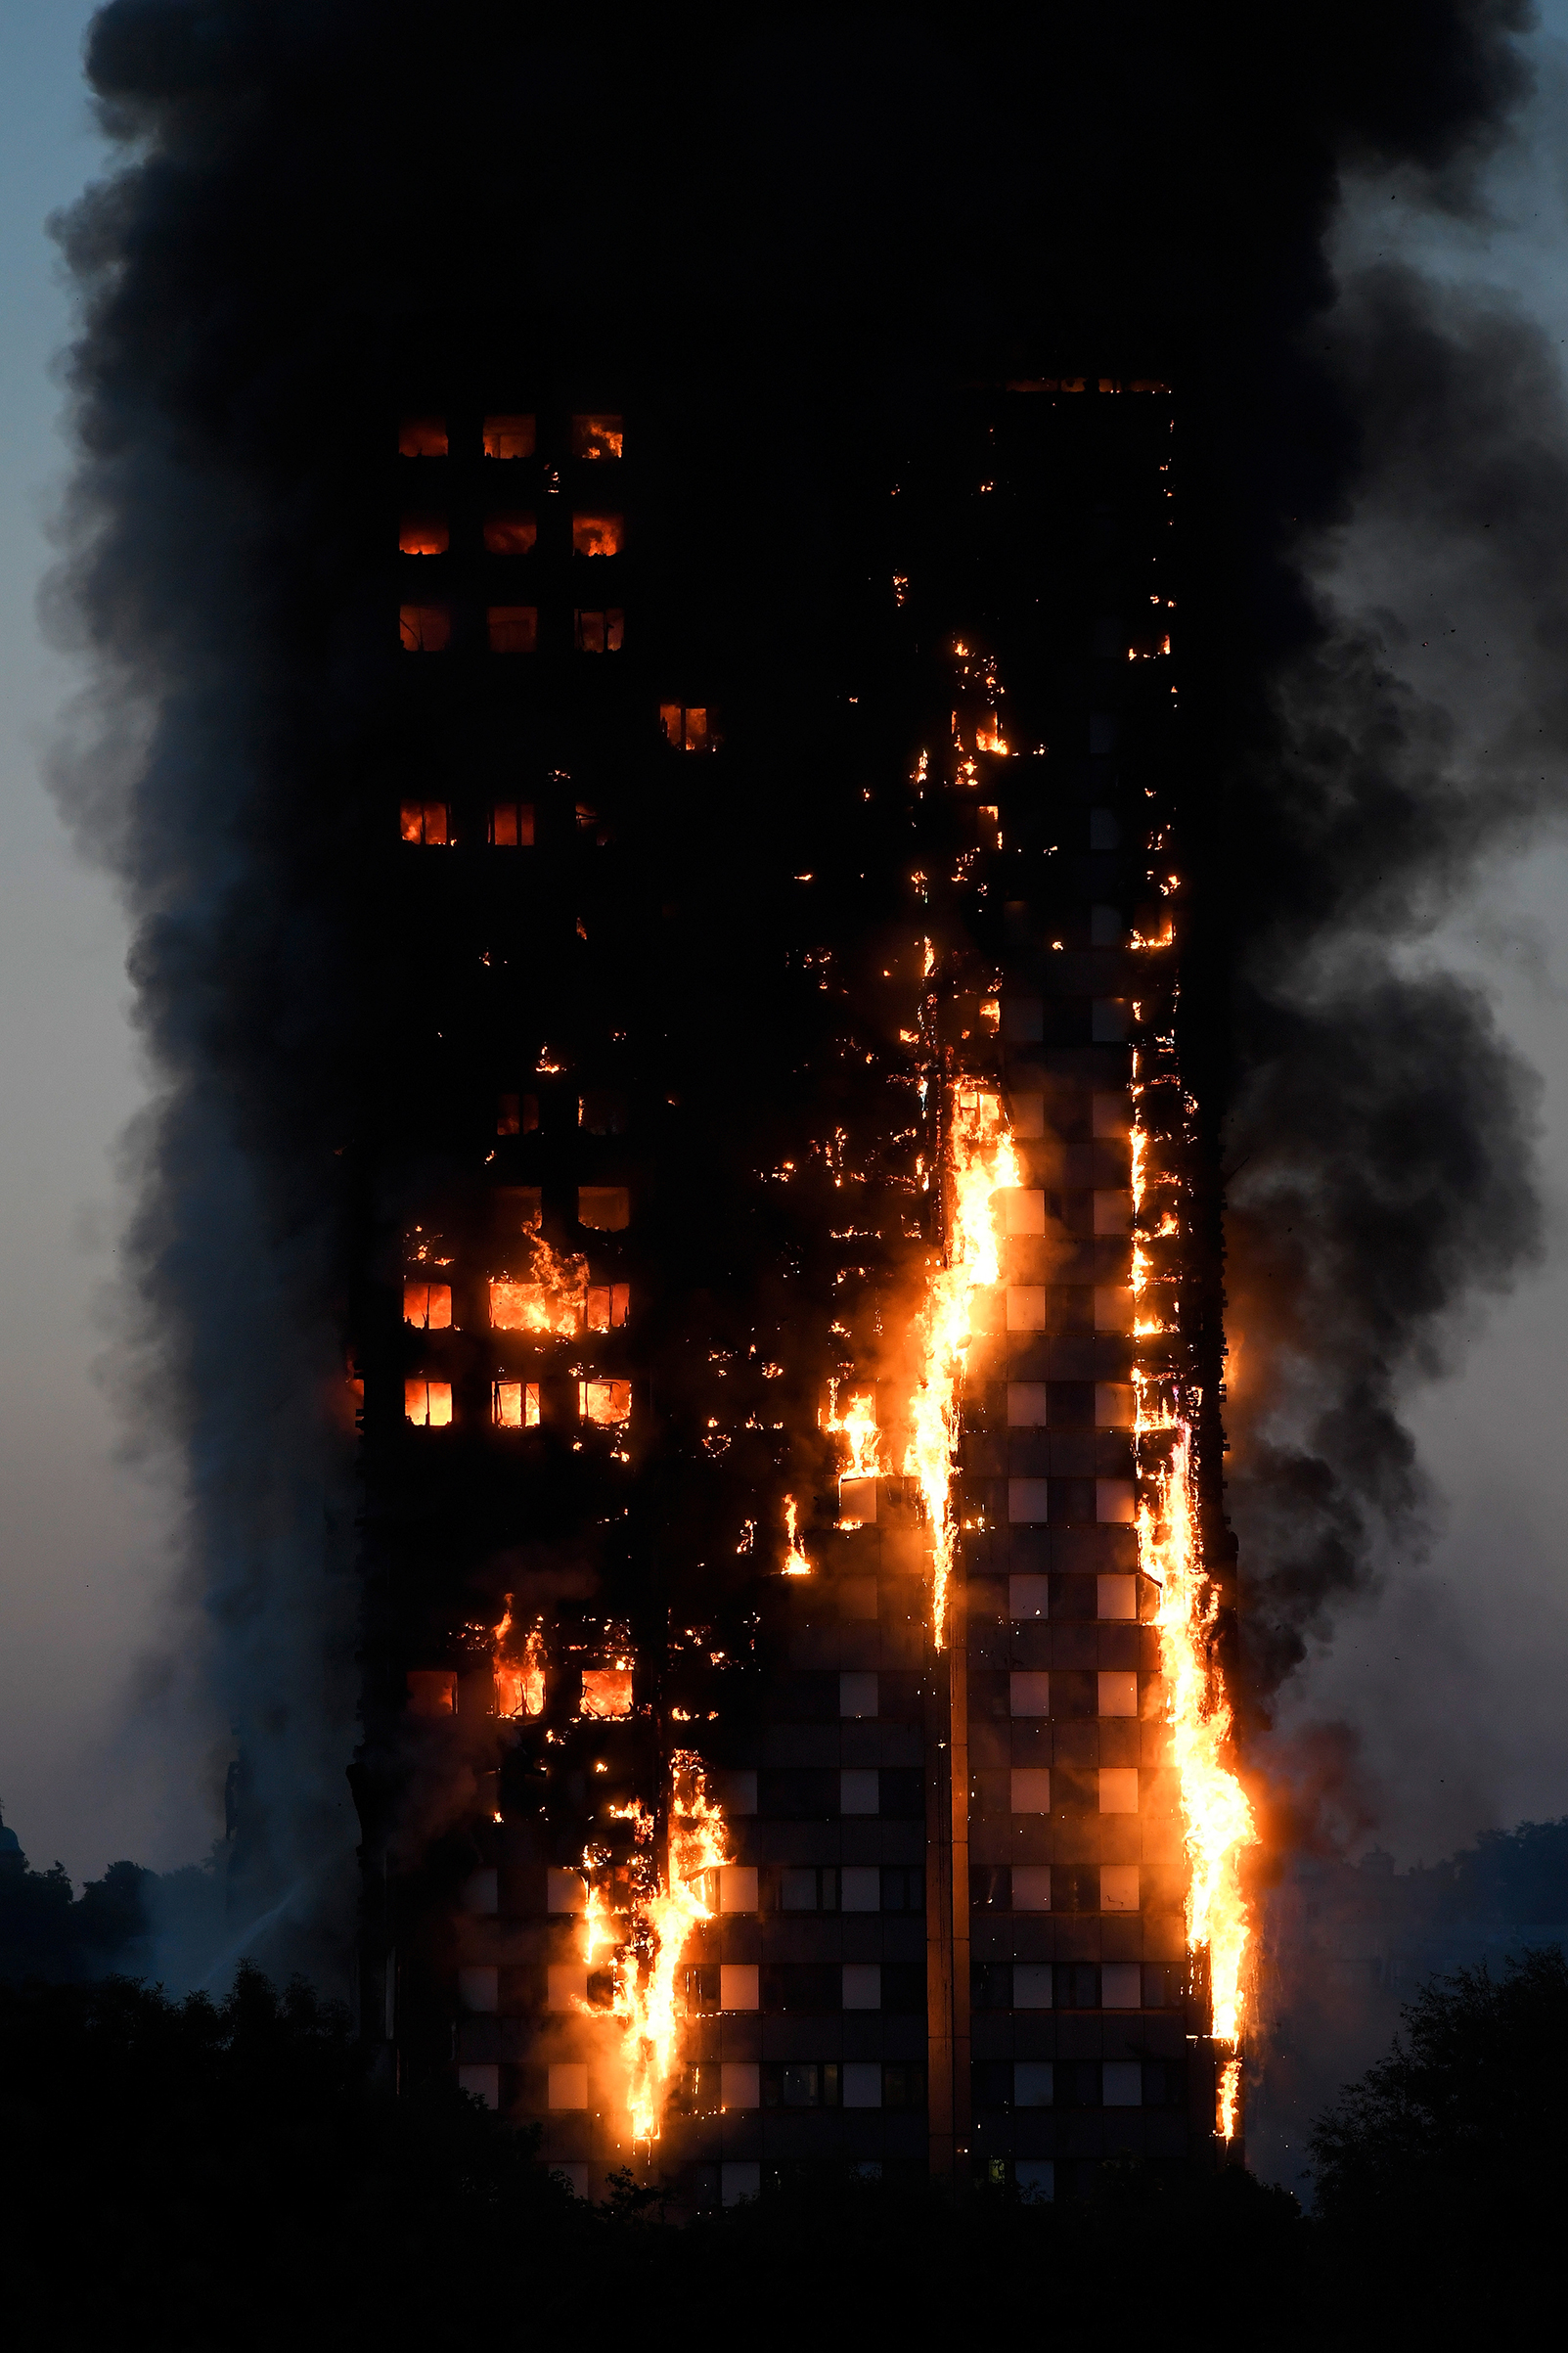 Flames and smoke billow as firefighters deal with a serious fire in a tower block at Latimer Road in West London on June 14, 2017.